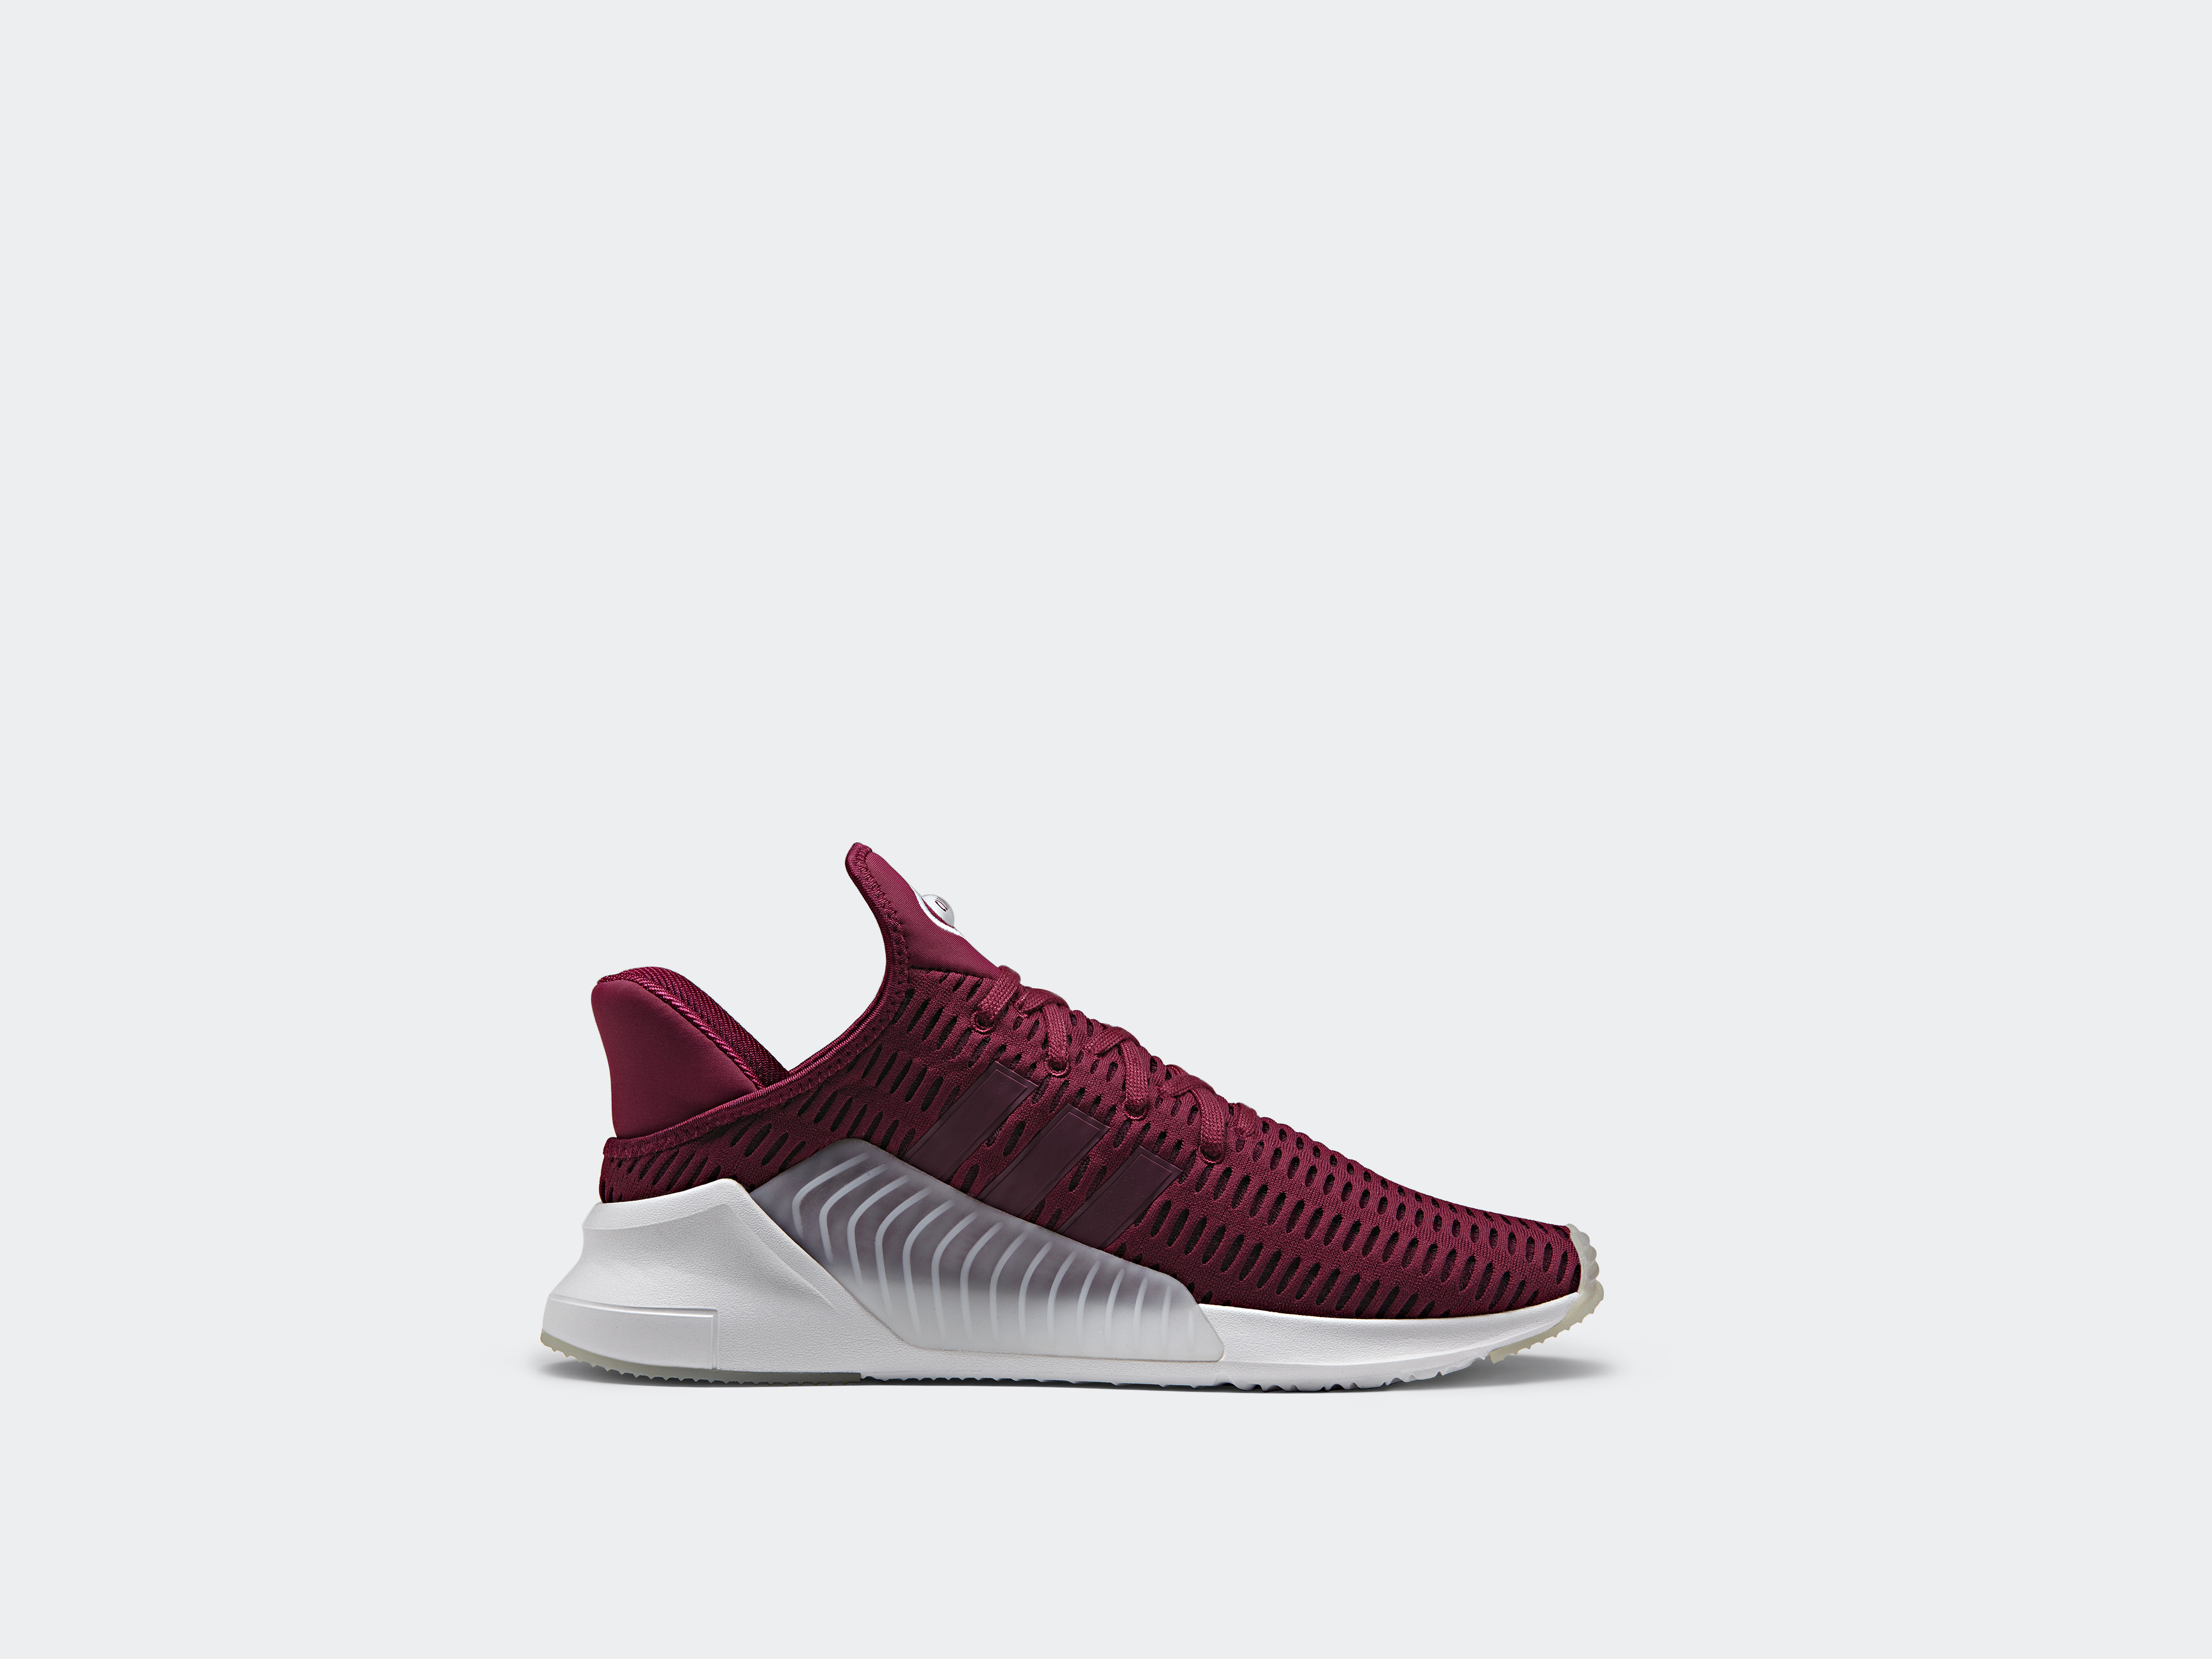 adidas Climacool 0217 shoes grey black red